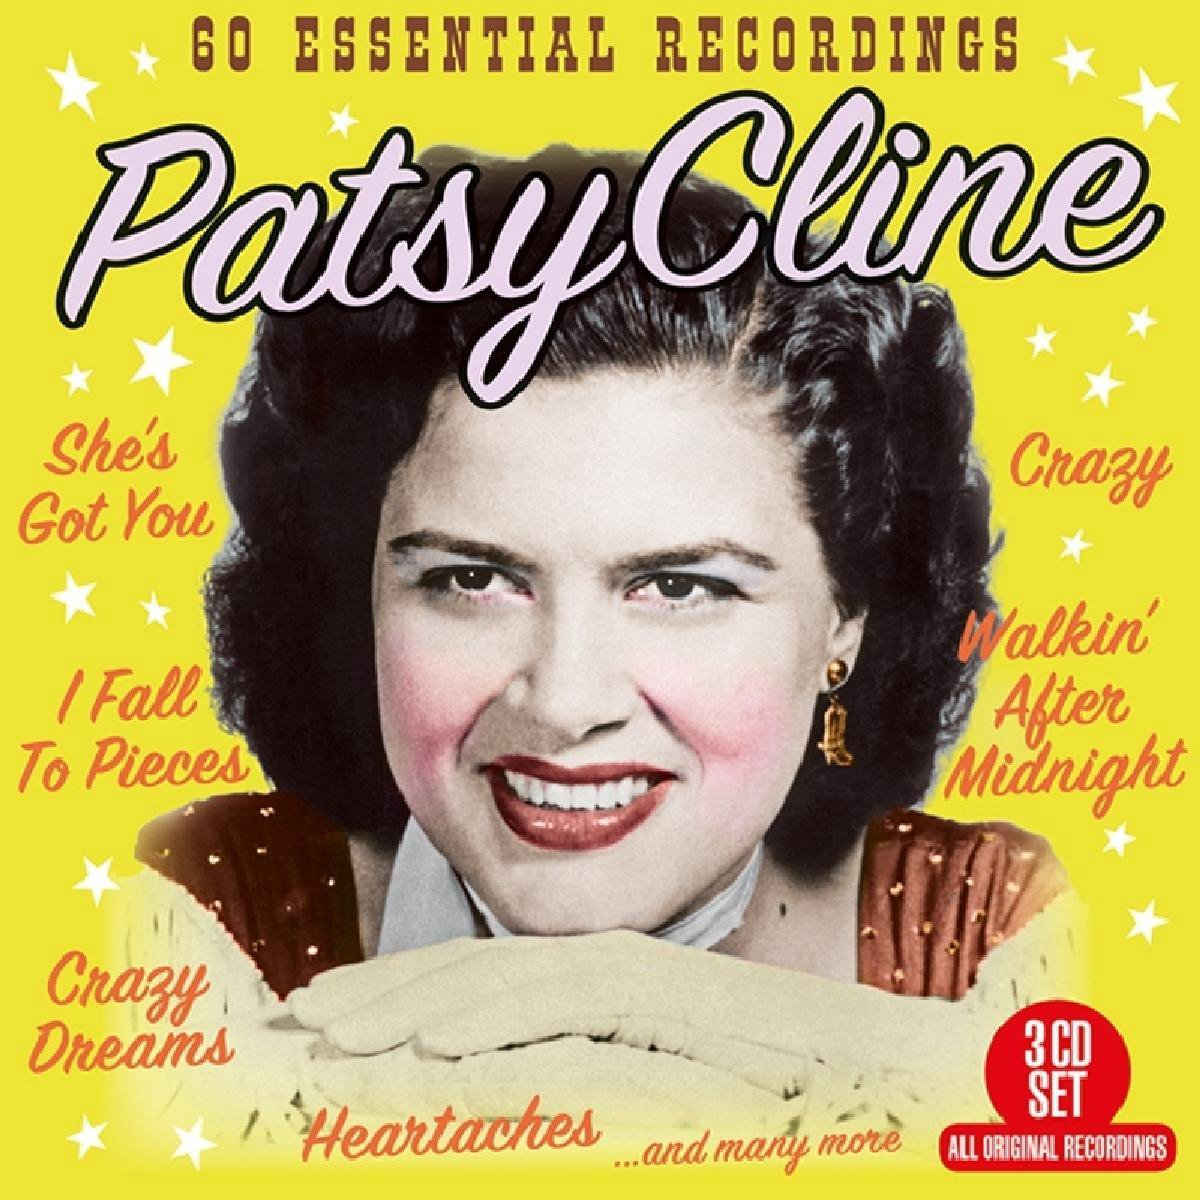 60 Essential Recordings - Patsy Cline